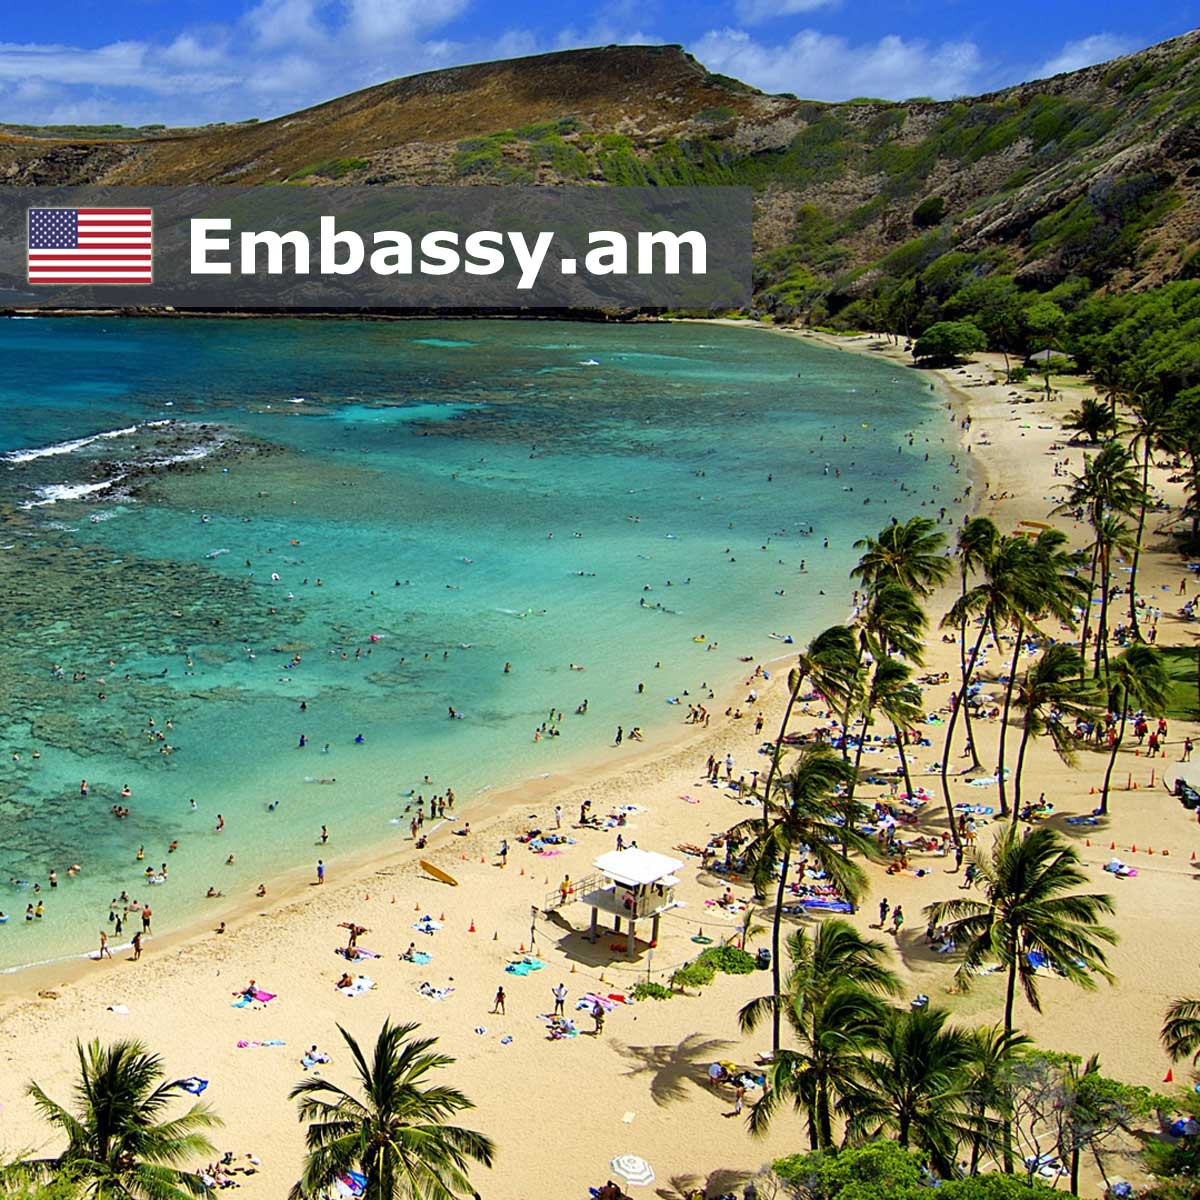 Hawaii - Hotels in United States of America - Embassy.am